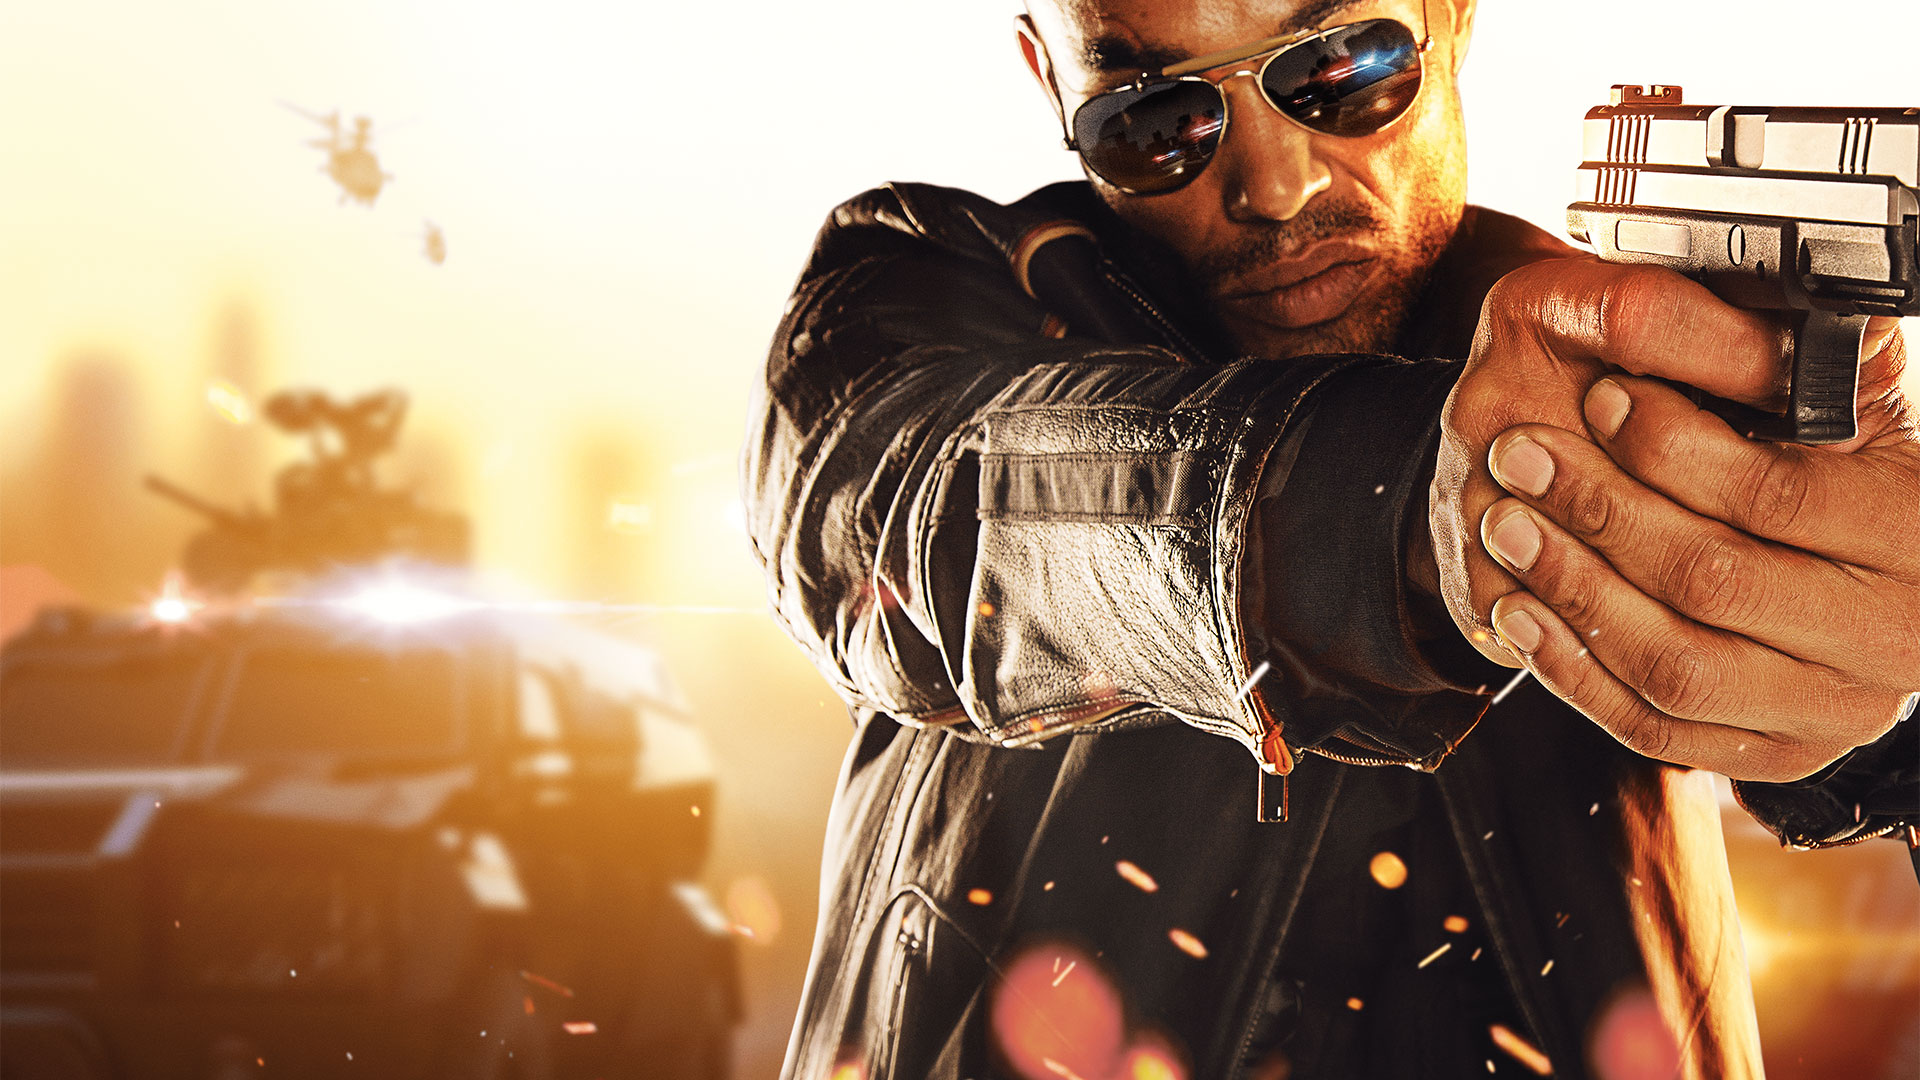 Battlefield hardline has some awesome rare animations vg247